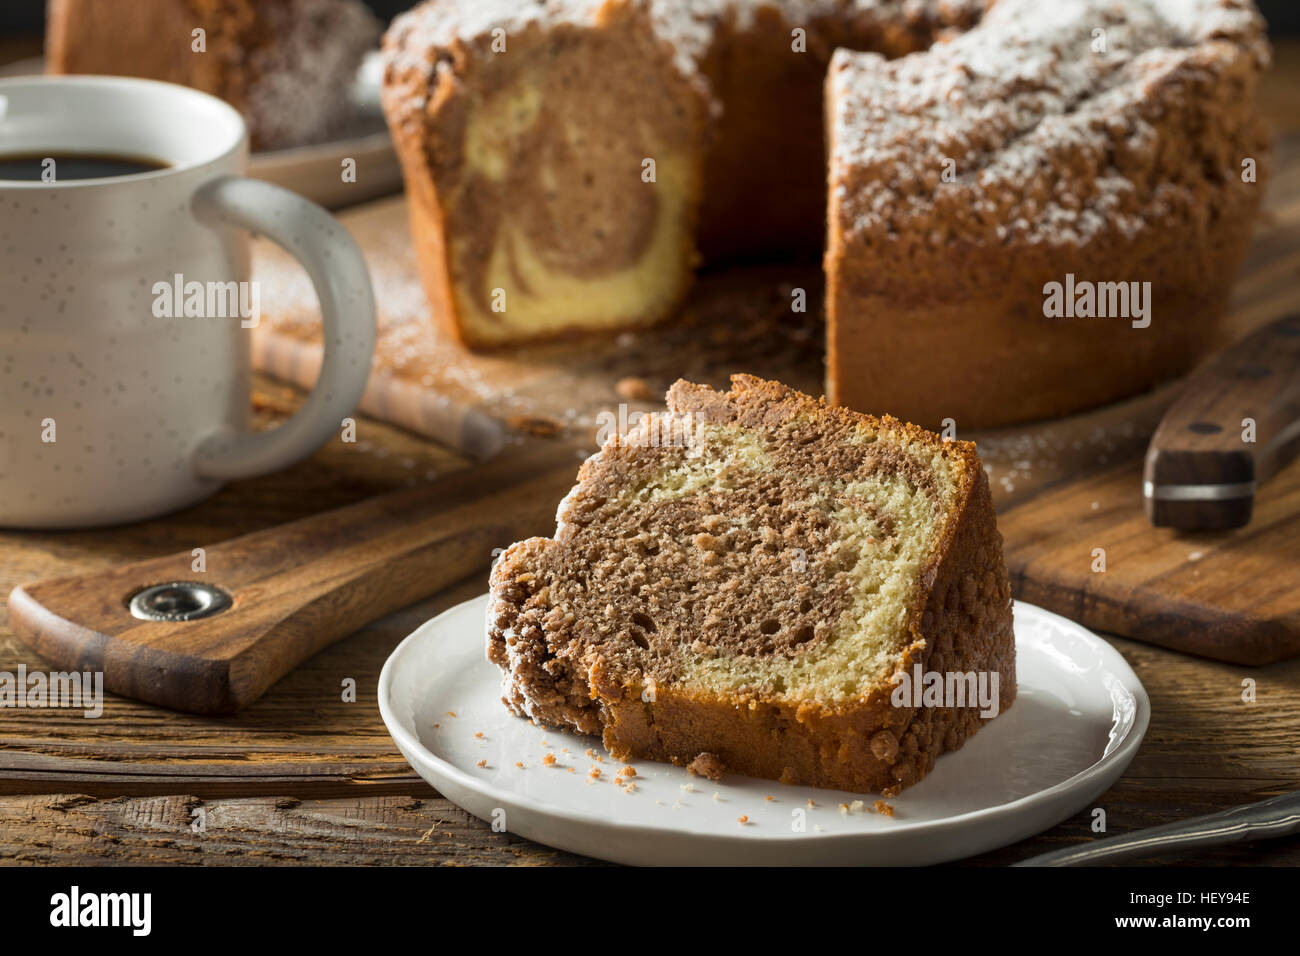 Homemade Cinnamon Coffee Cake with Powdered Sugar - Stock Image